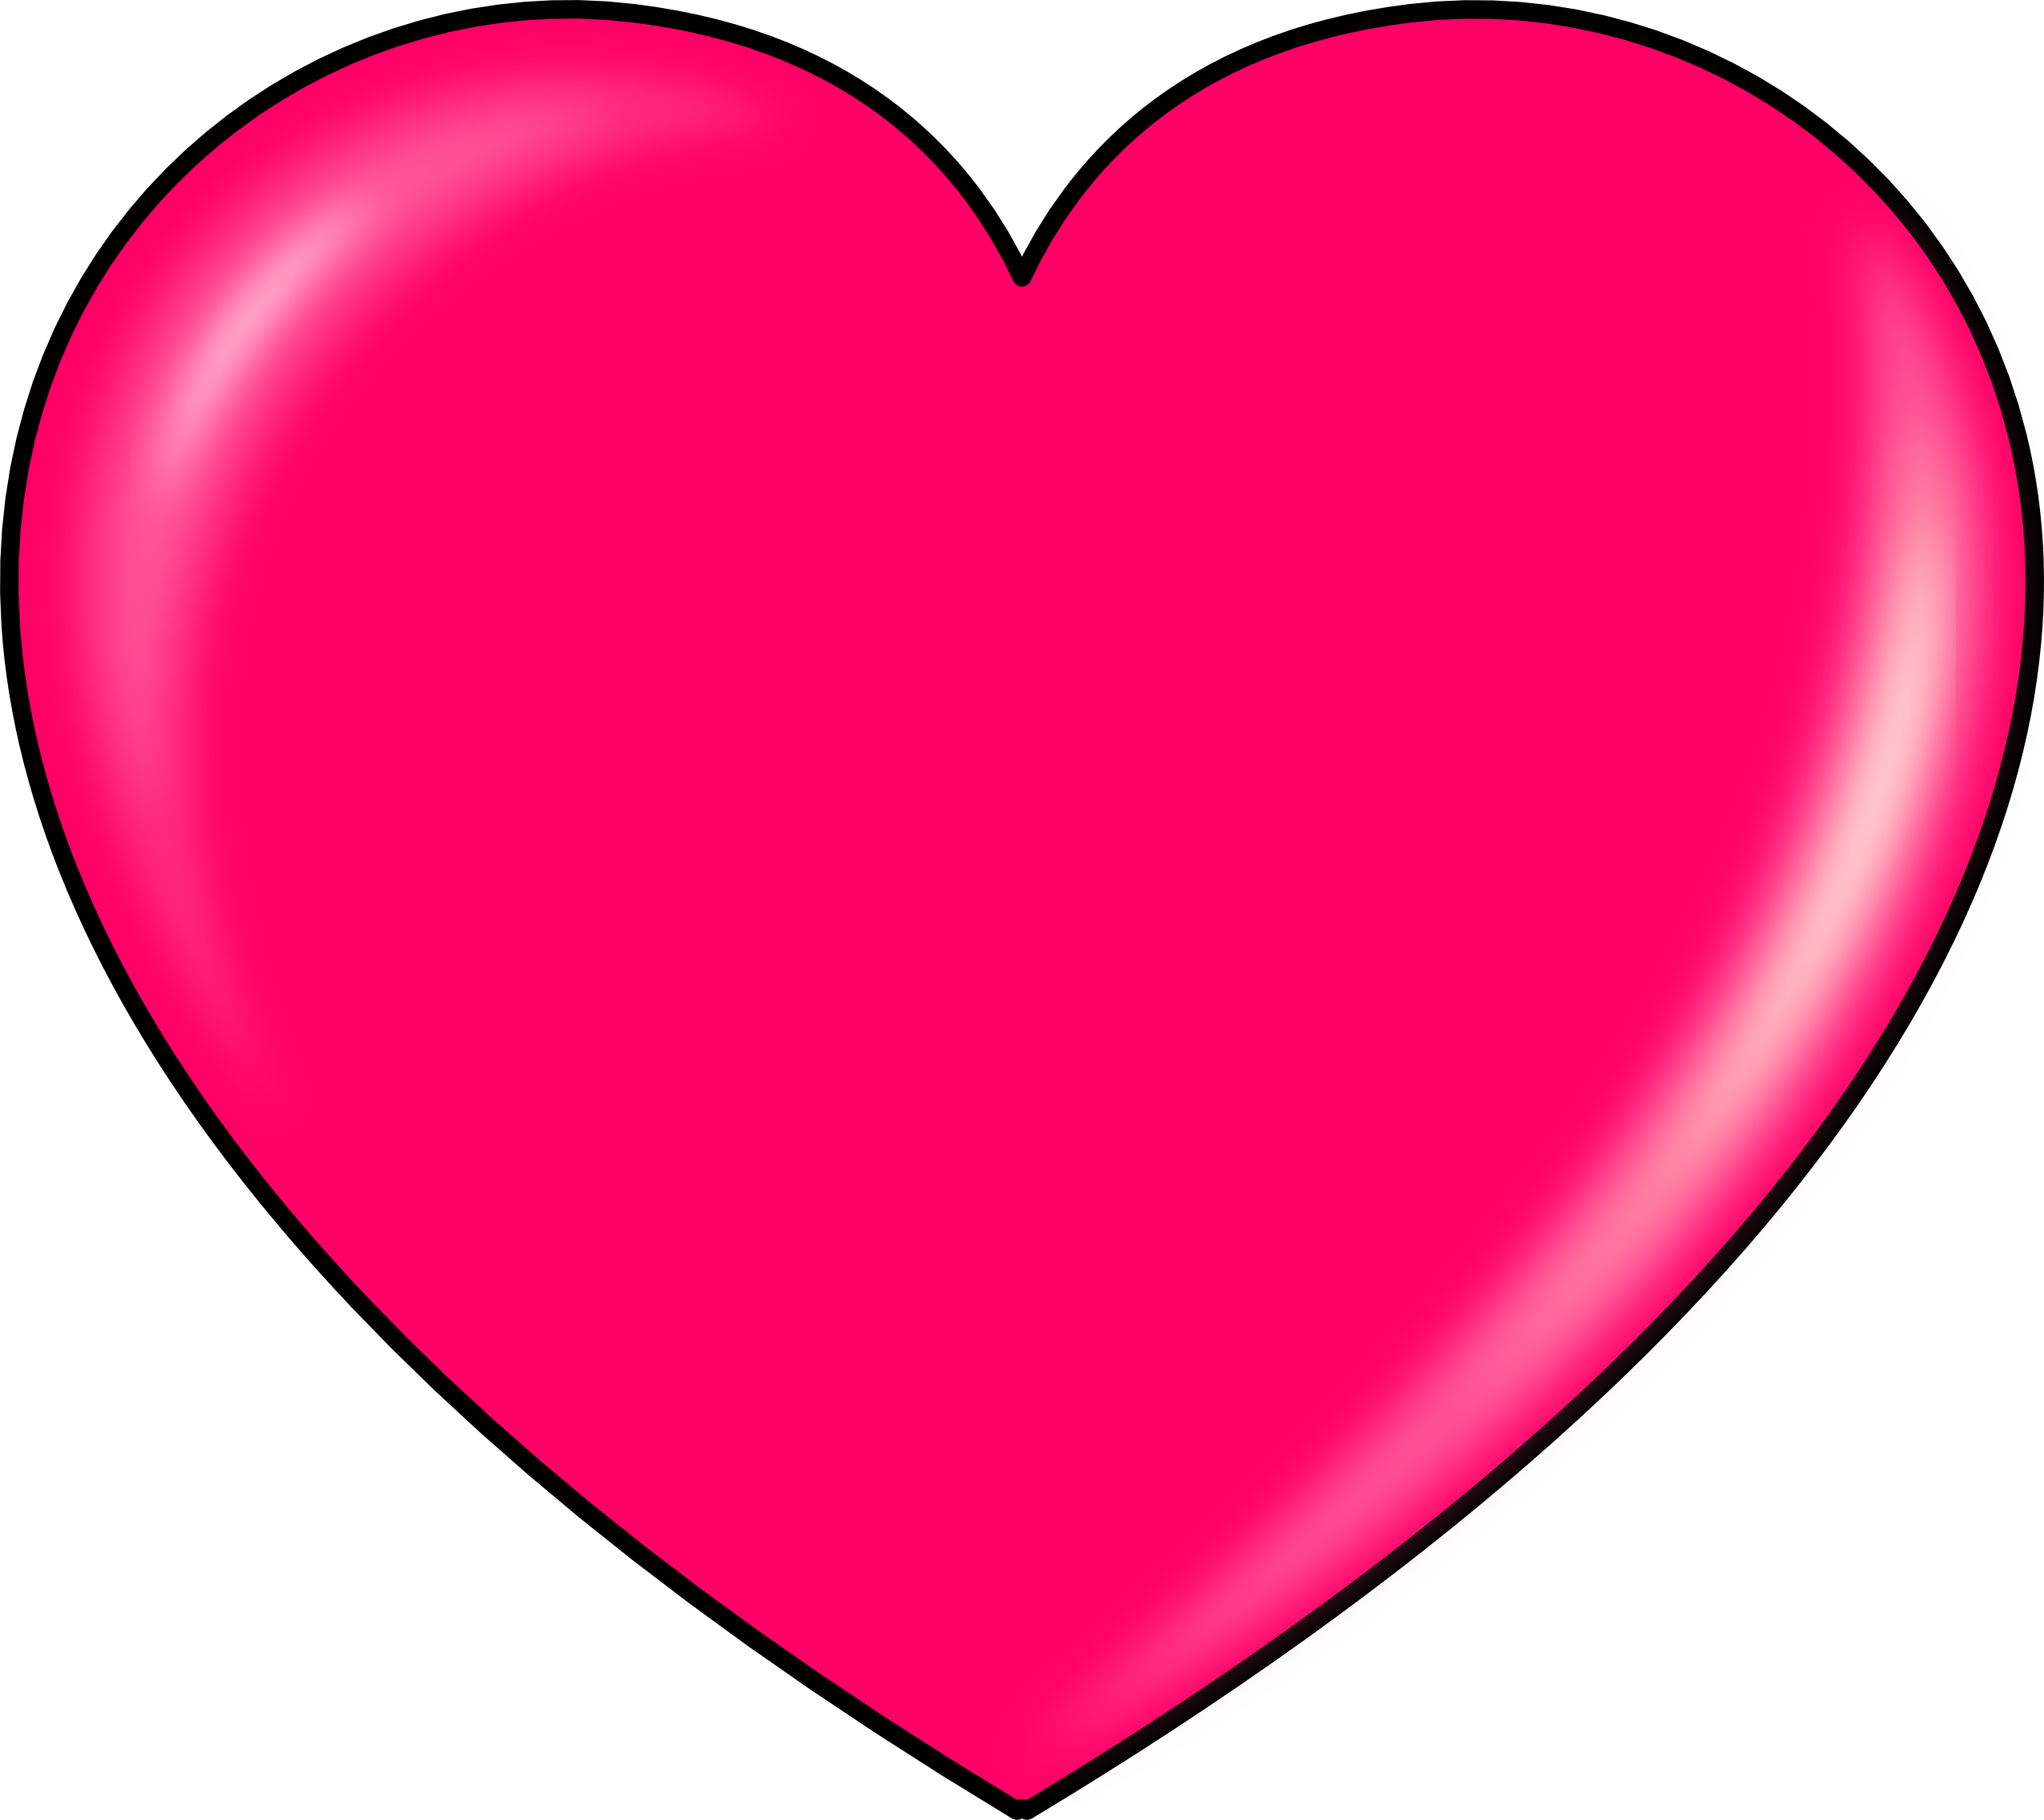 Pink heart PNG image, free download - Heart HD PNG